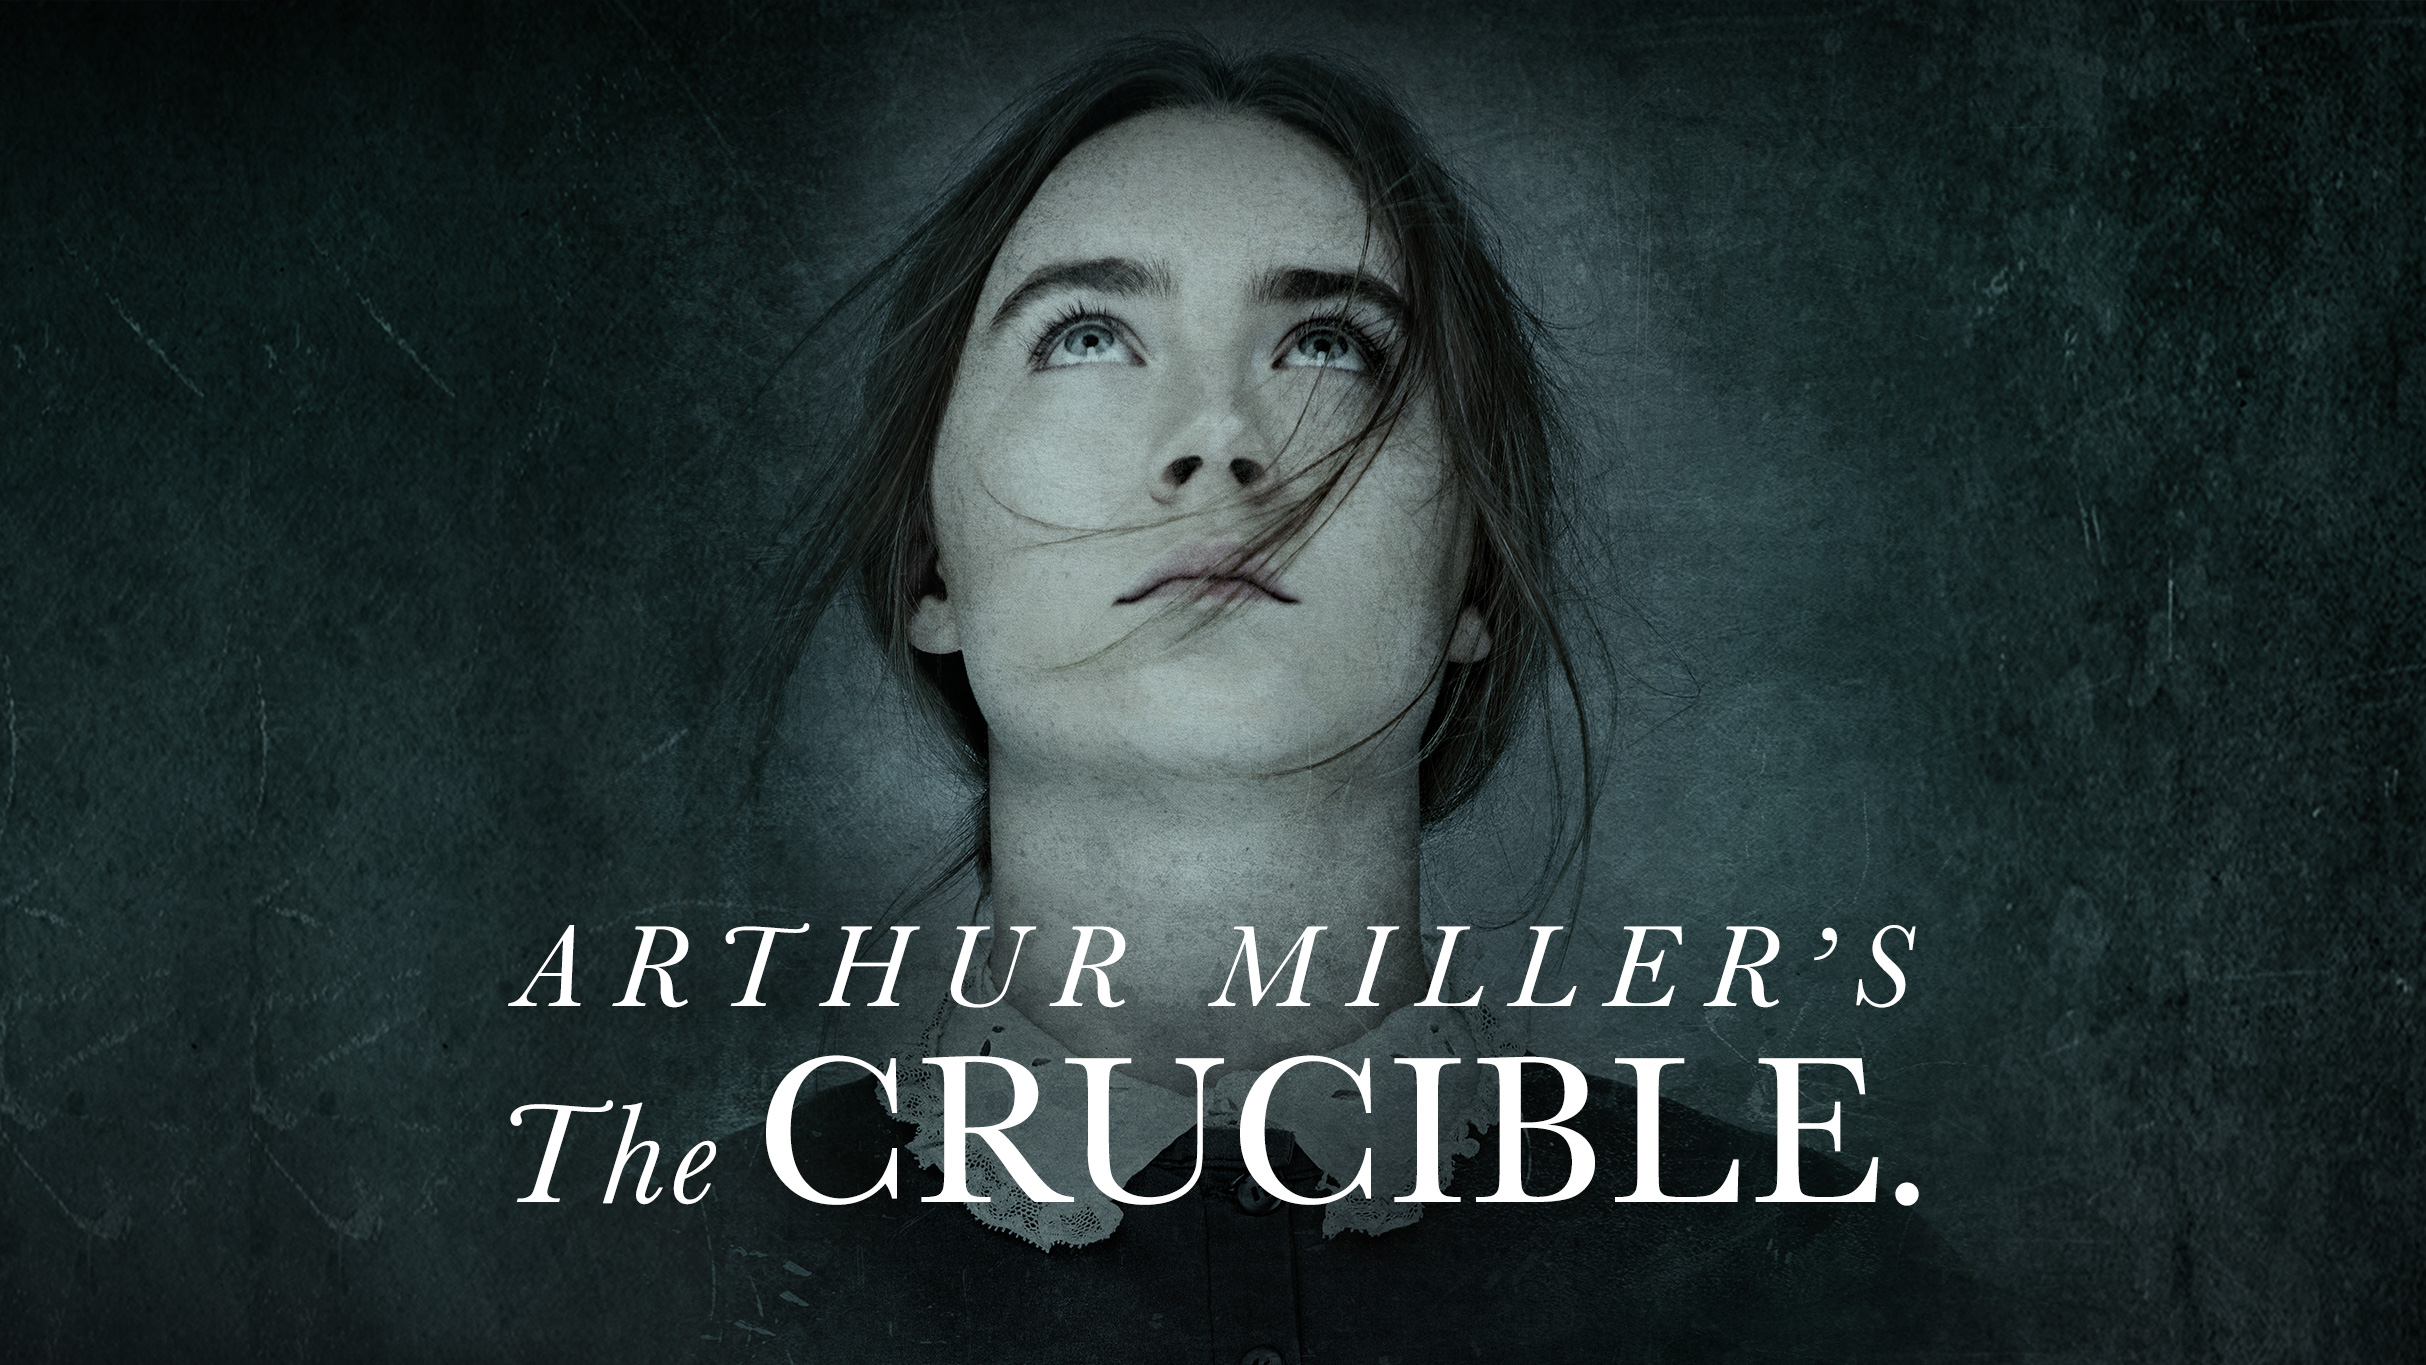 does arthur millers play the crucible end in hope Arthur miller - hysteria, evil and hope depicted in the the play, the crucible, by arthur miller had very the entire play, from the beginning till the end.